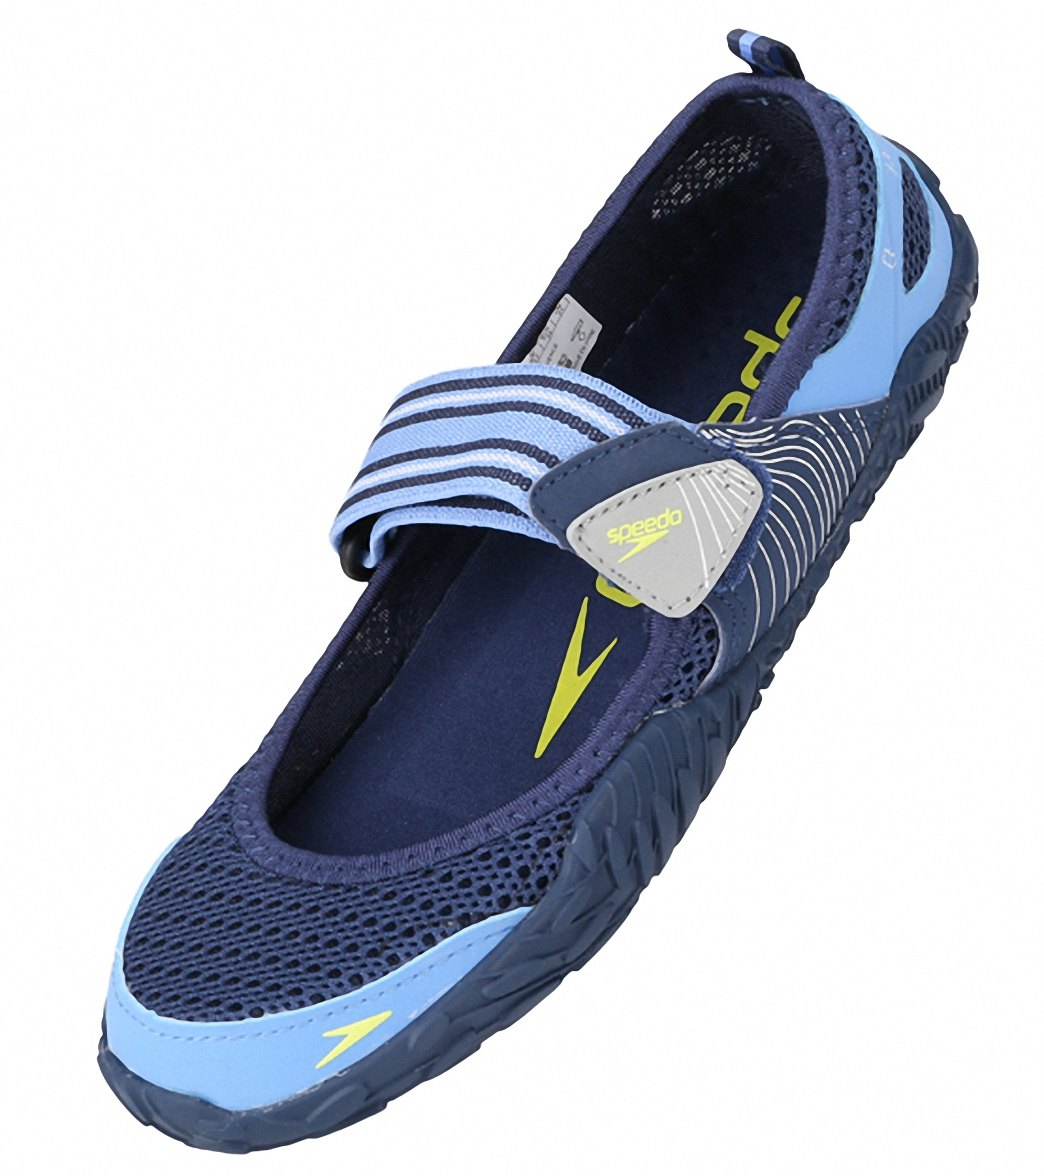 Speedo Women's Surfwalkers Offshore Strap Water Shoes at ...